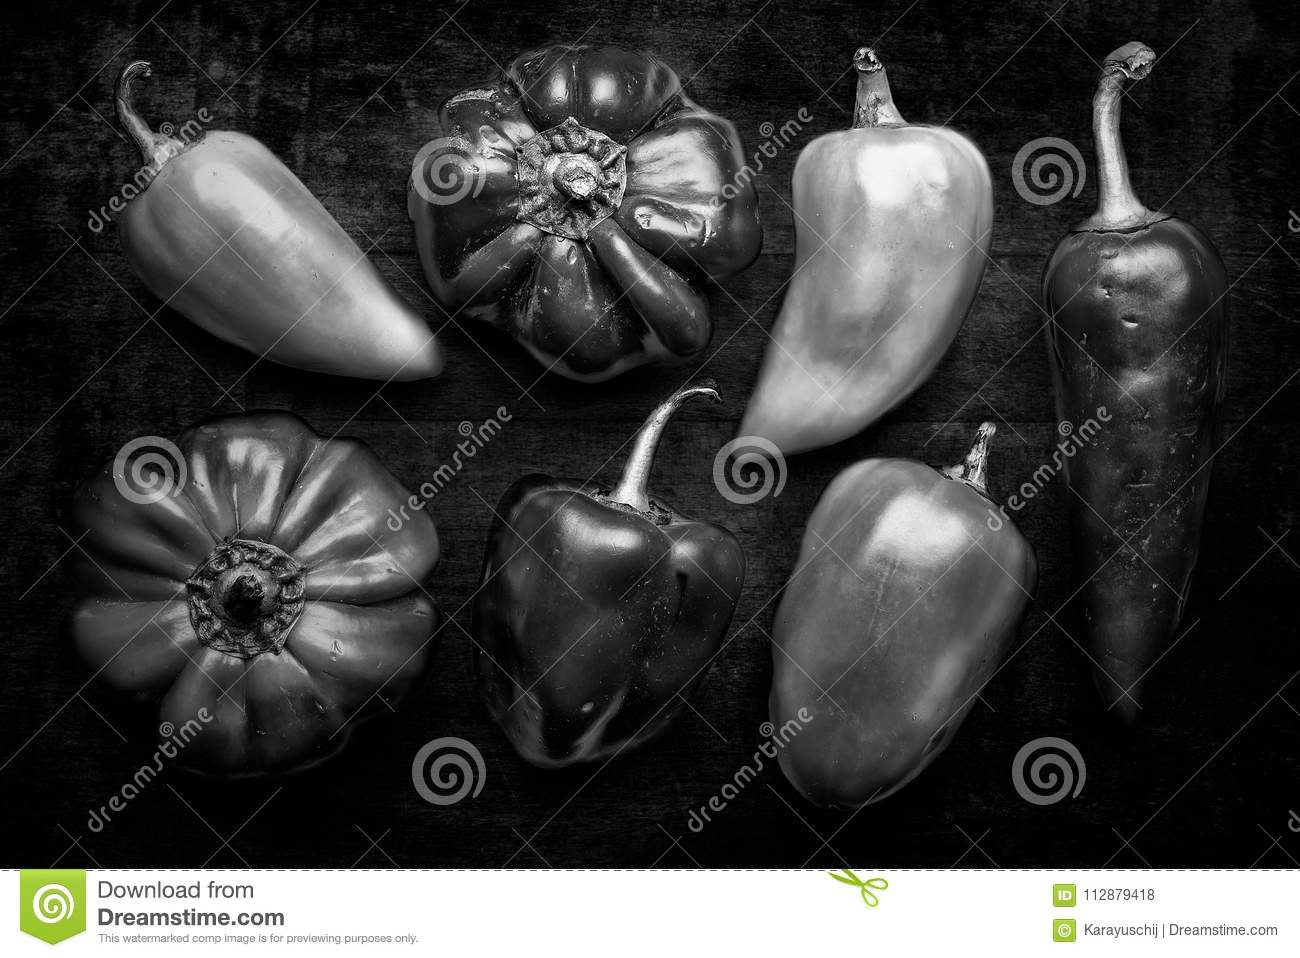 A group of natural bell peppers from the garden on a dark background